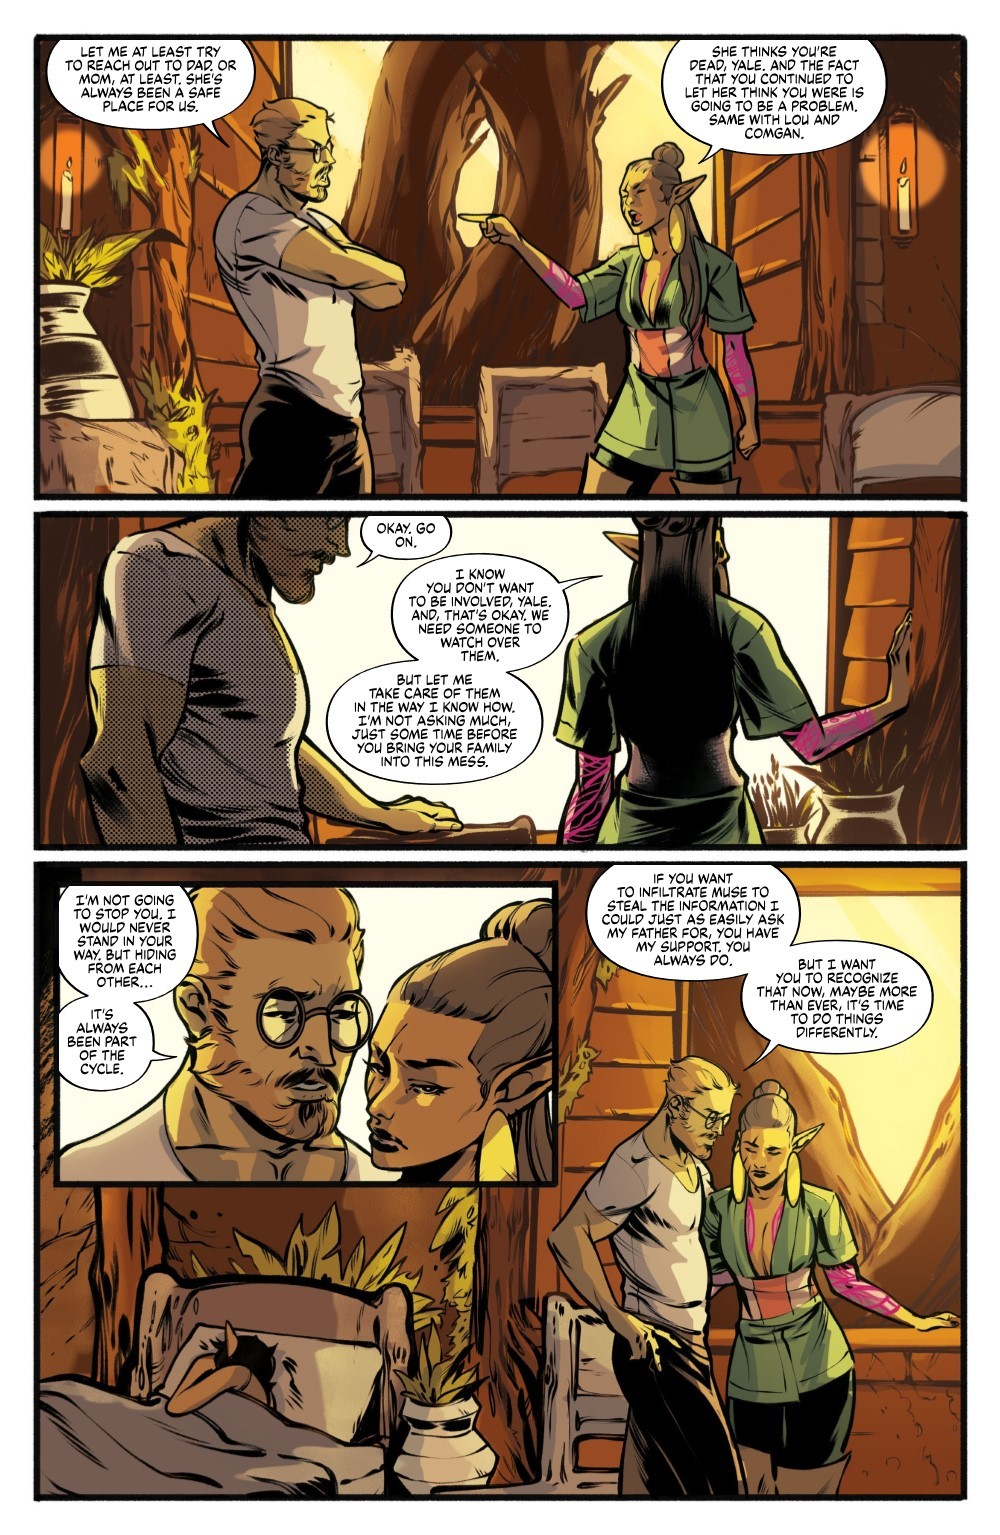 DRYAD-V2-TPB-REFERENCE-016 ComicList Previews: DRYAD VOLUME 2 TP